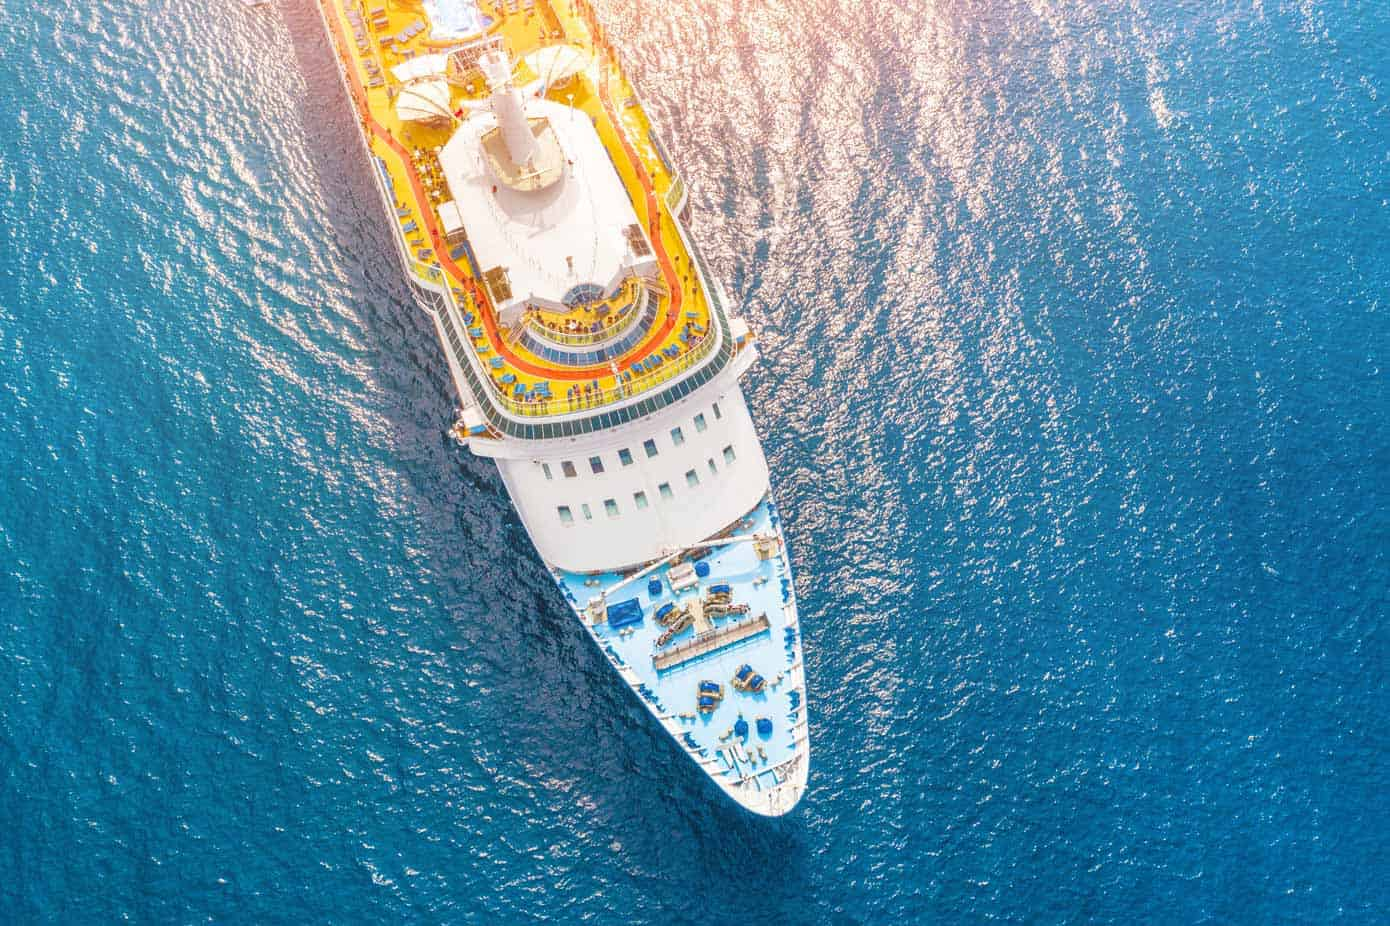 Aerial view of a cruise ship in a turquoise ocean.